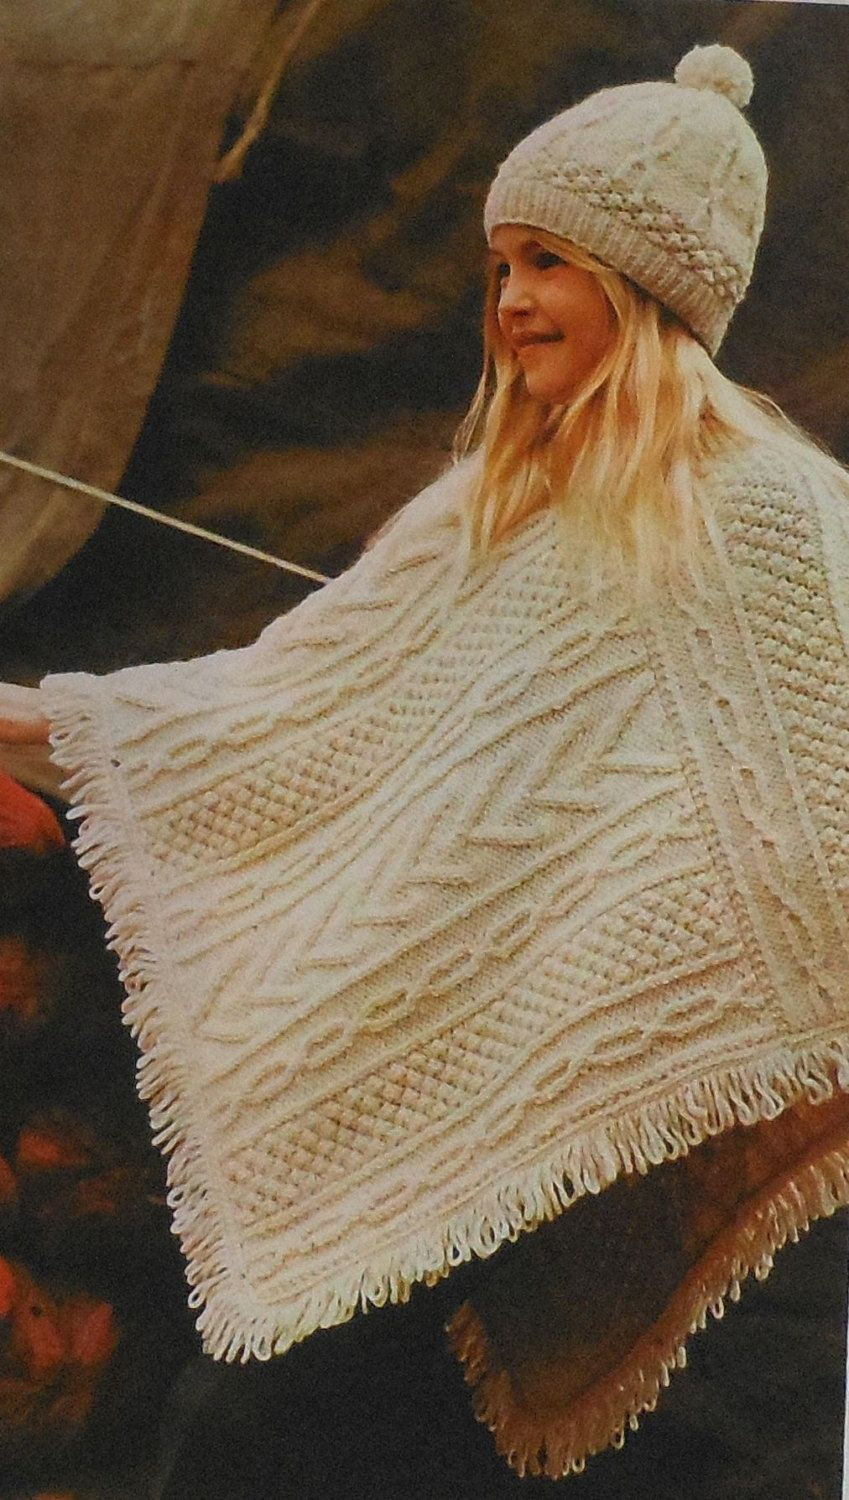 Vintage childs aran poncho and hat knitting pattern sewing vintage childs aran poncho and hat knitting pattern bankloansurffo Choice Image